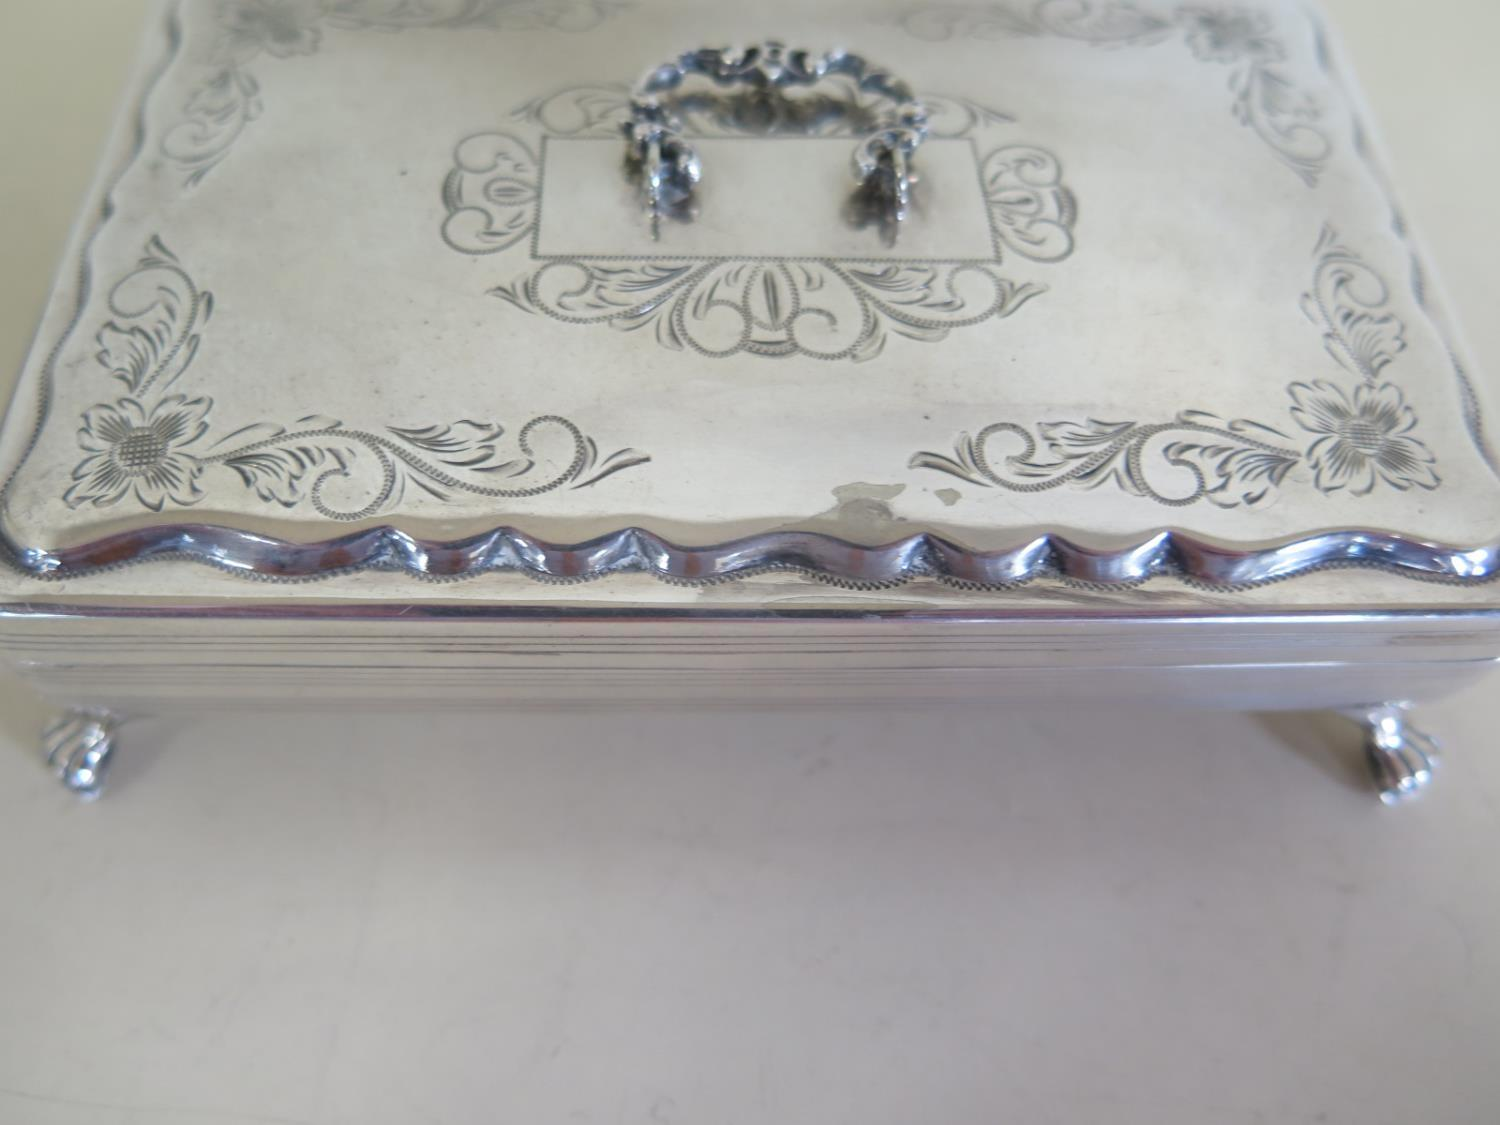 Lot 580 - A near pair of Dutch trinket boxes, one in dutch silver, the other plated, 3.5cm tall x 13cm x 9cm -